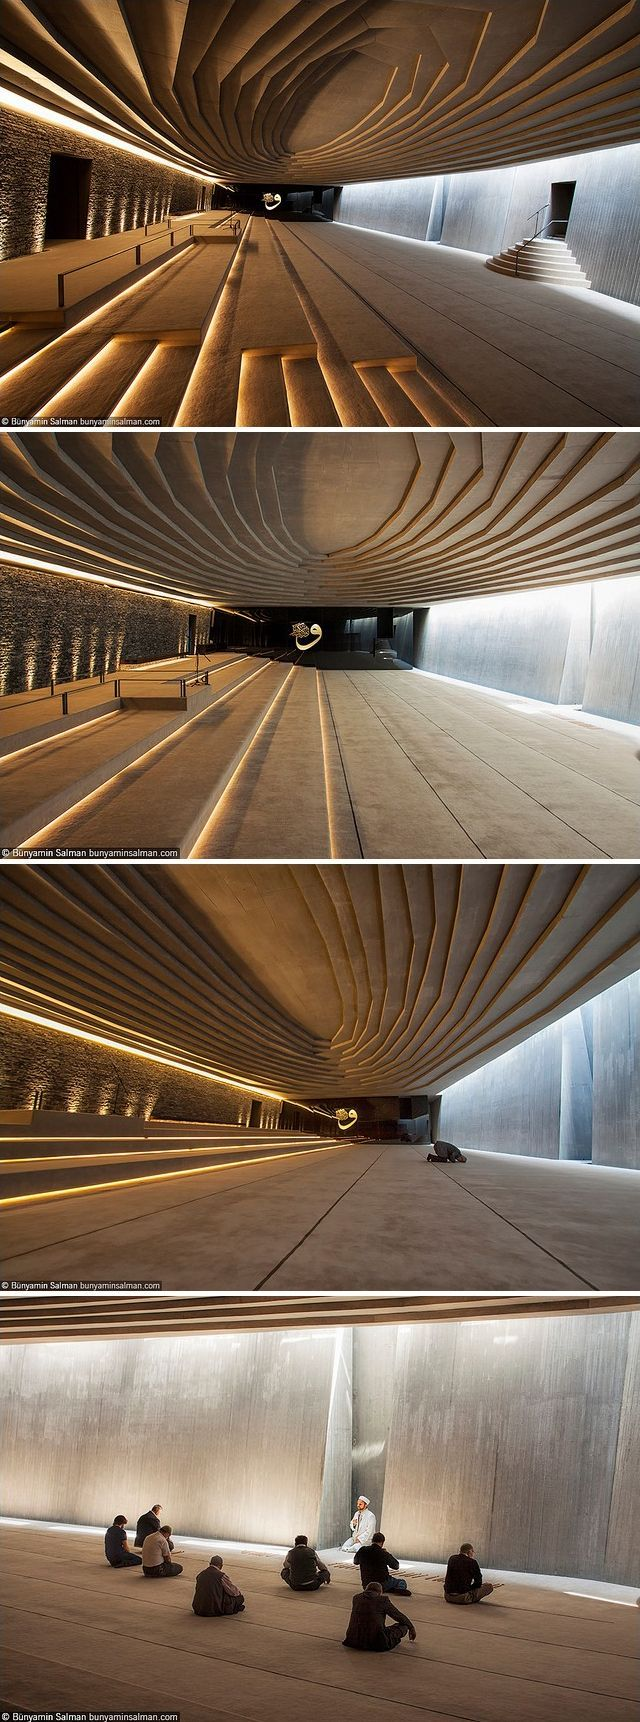 The main hall of Sancaklar Mosque in Istanbul, Turkey. A simple, cave-like space 7 meters below ground with exposed stone and concrete walls. Designed by Emre Arolat Architects (EAA) and built in 2011. Photos by Bünyamin Salman, via Flickr.: